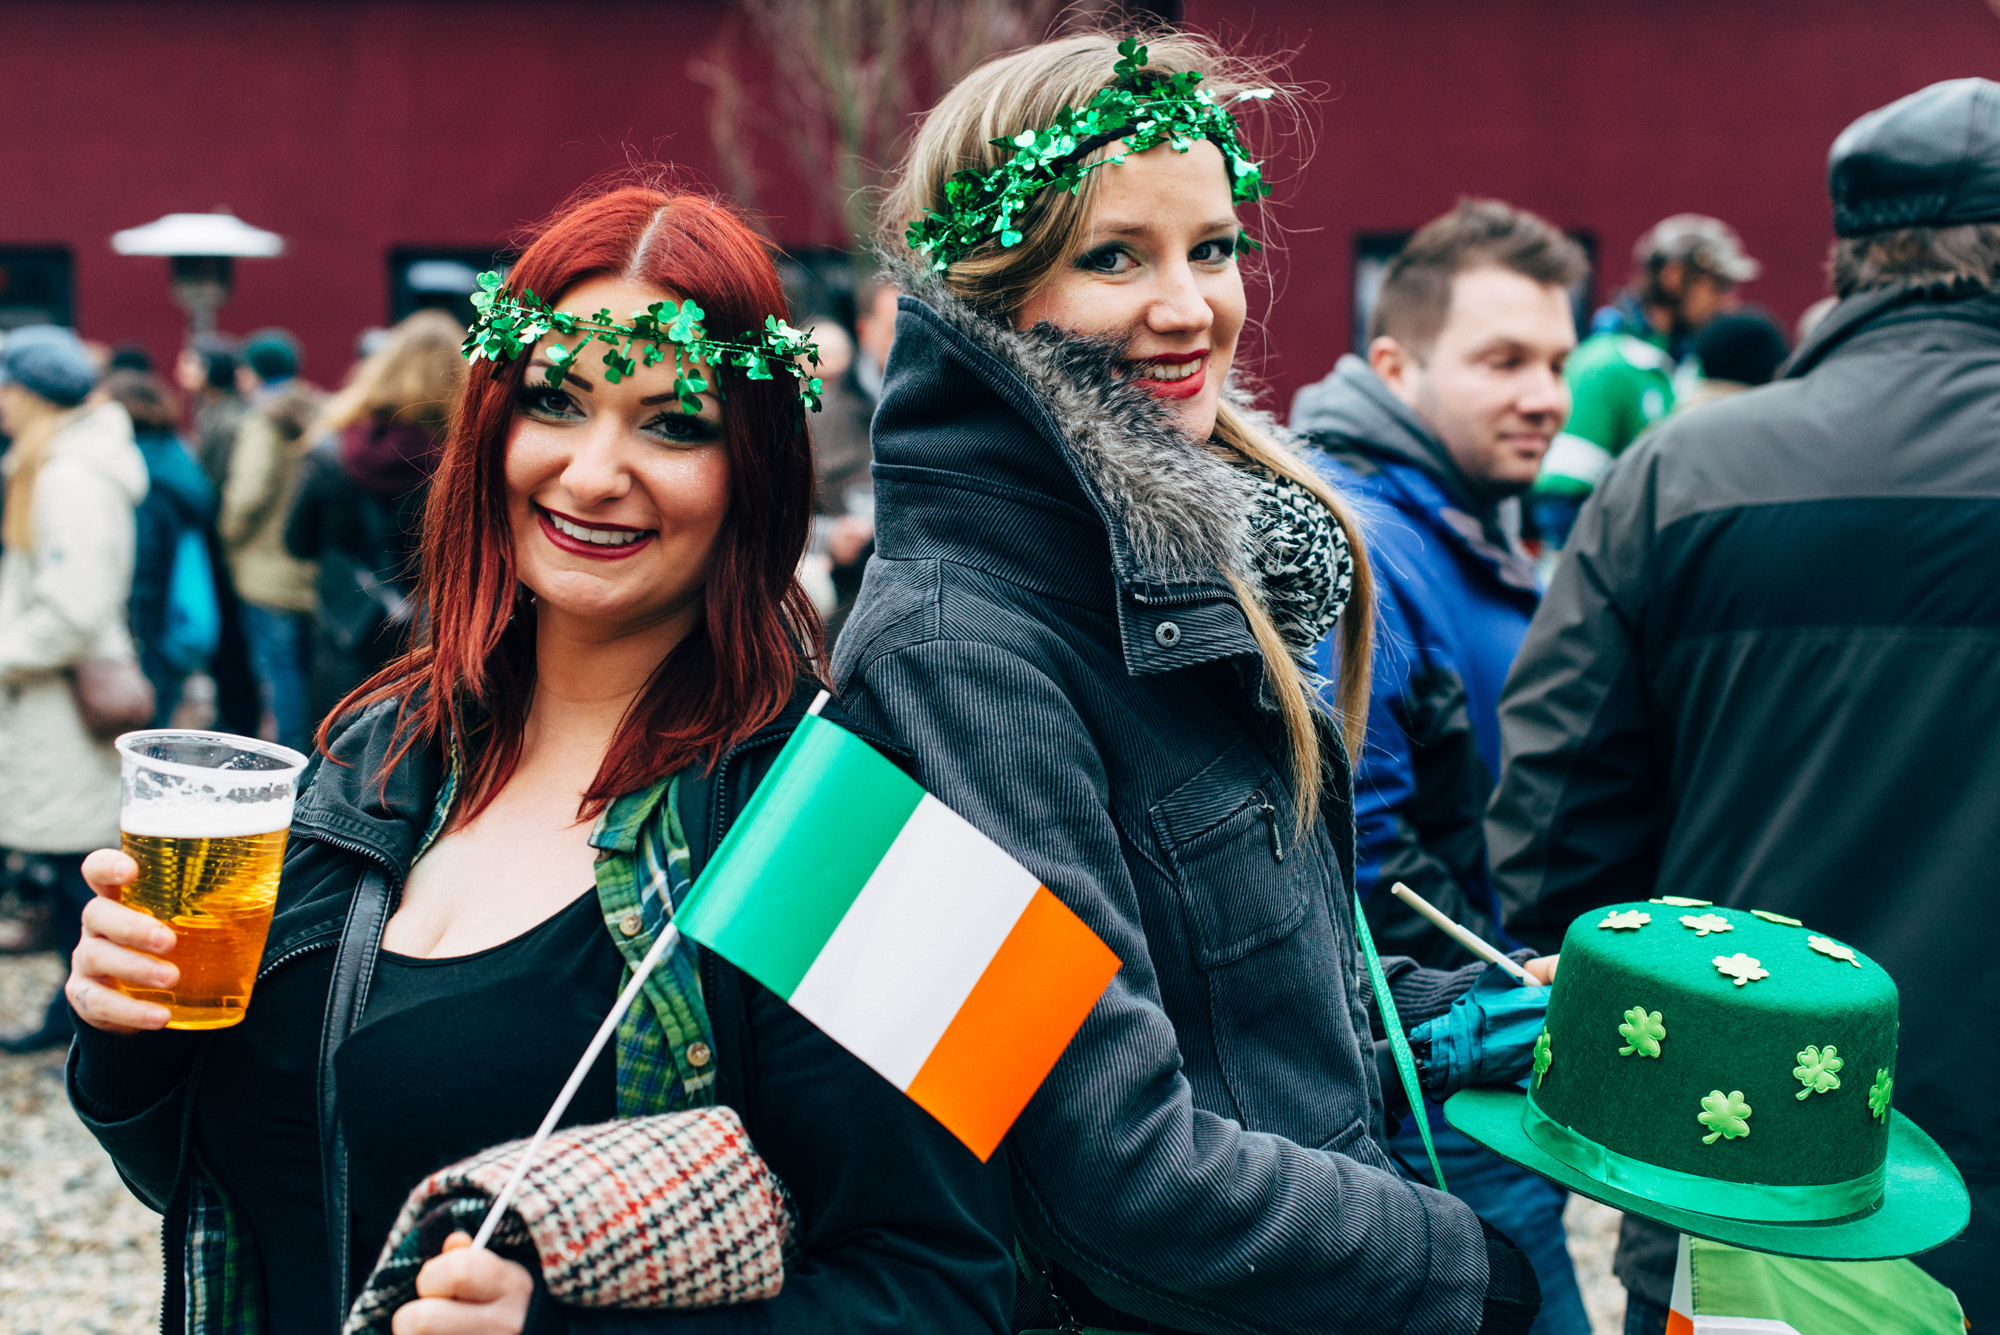 st-patricks-day-berlin-©-camille-blake-36.jpg